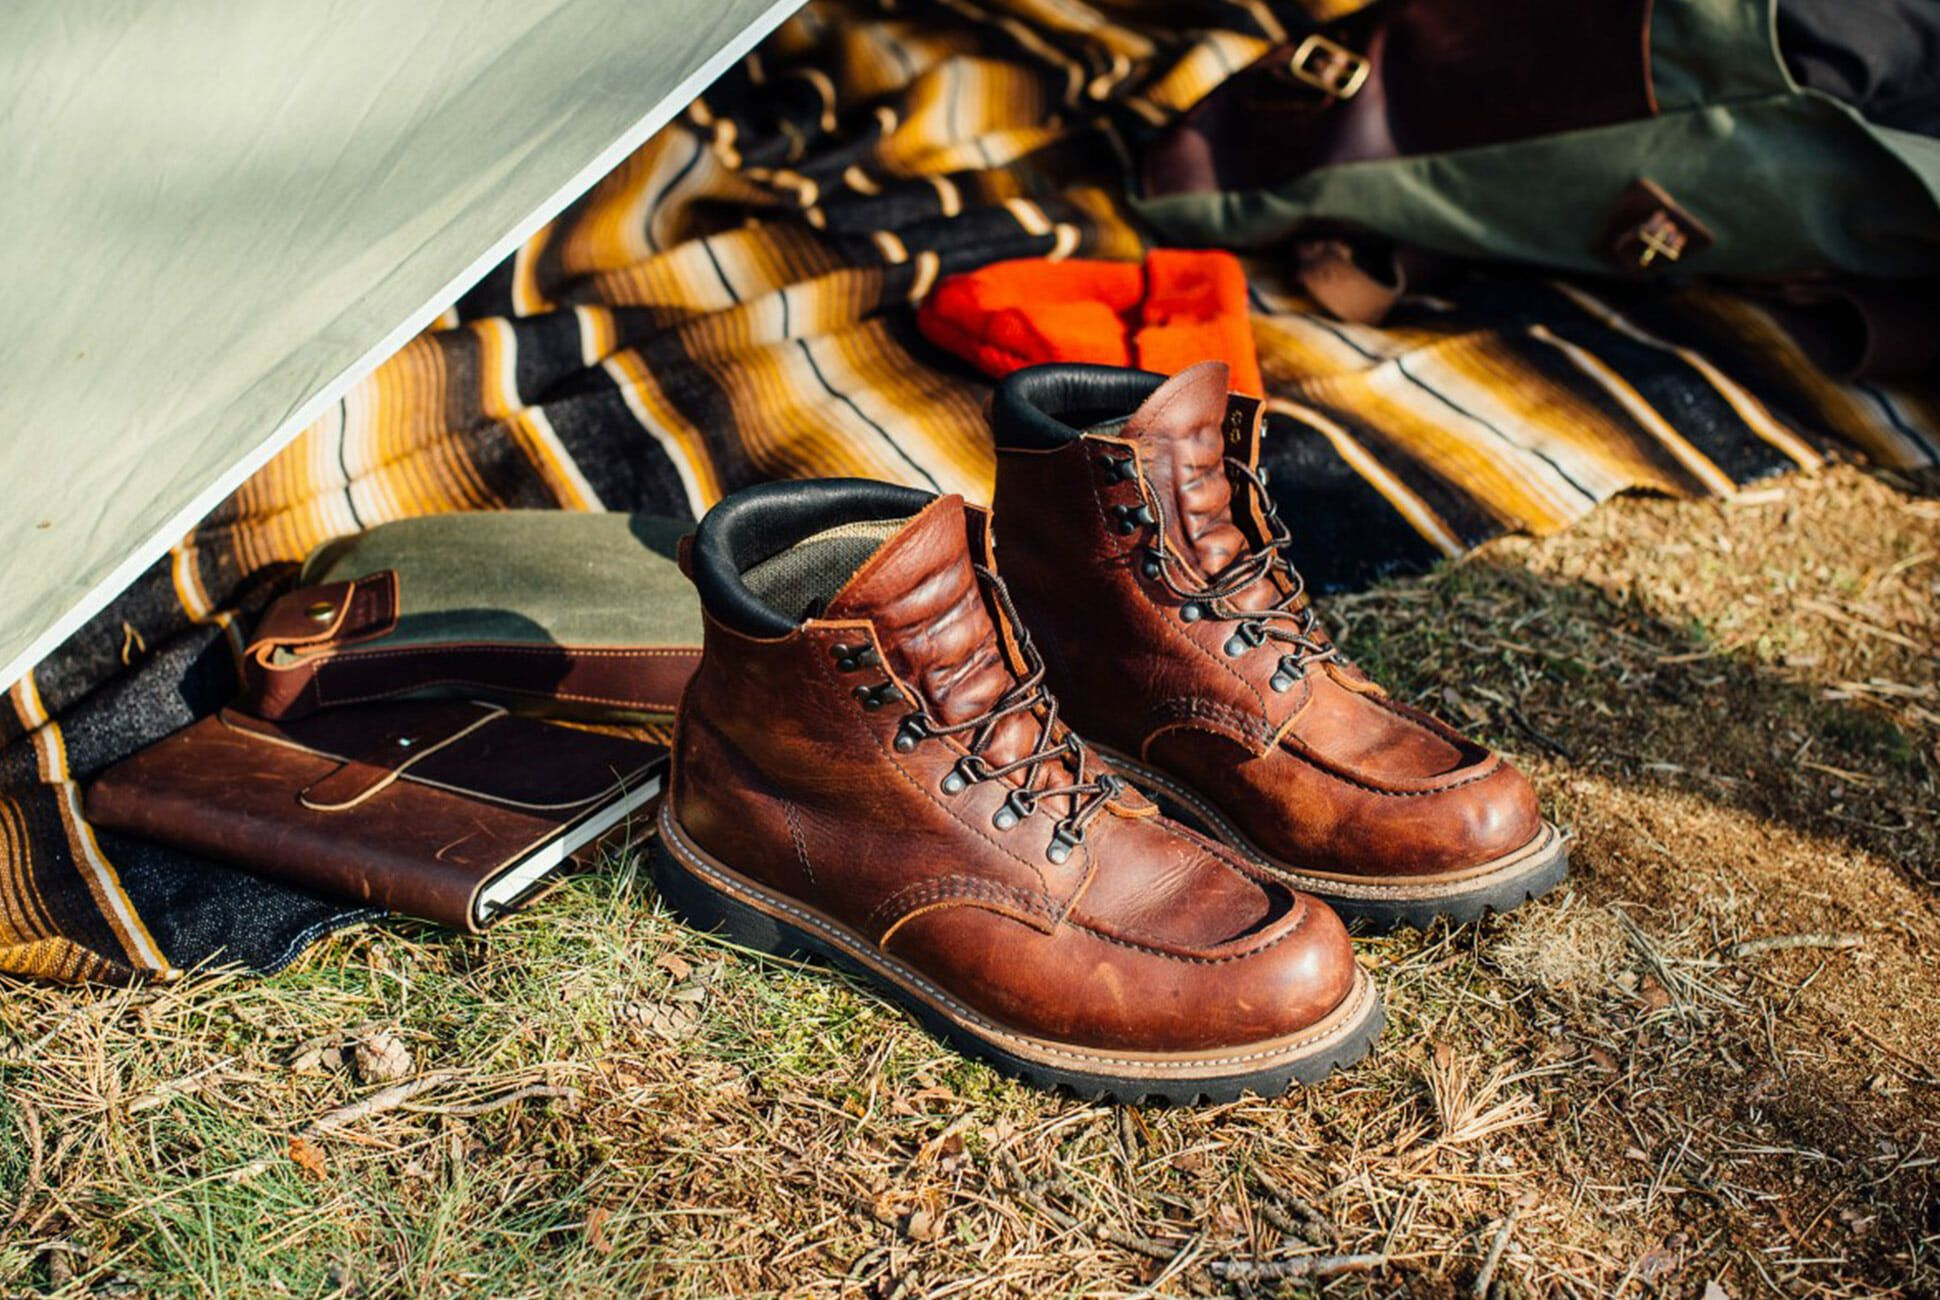 The Best Cyber Monday Deals on Boots